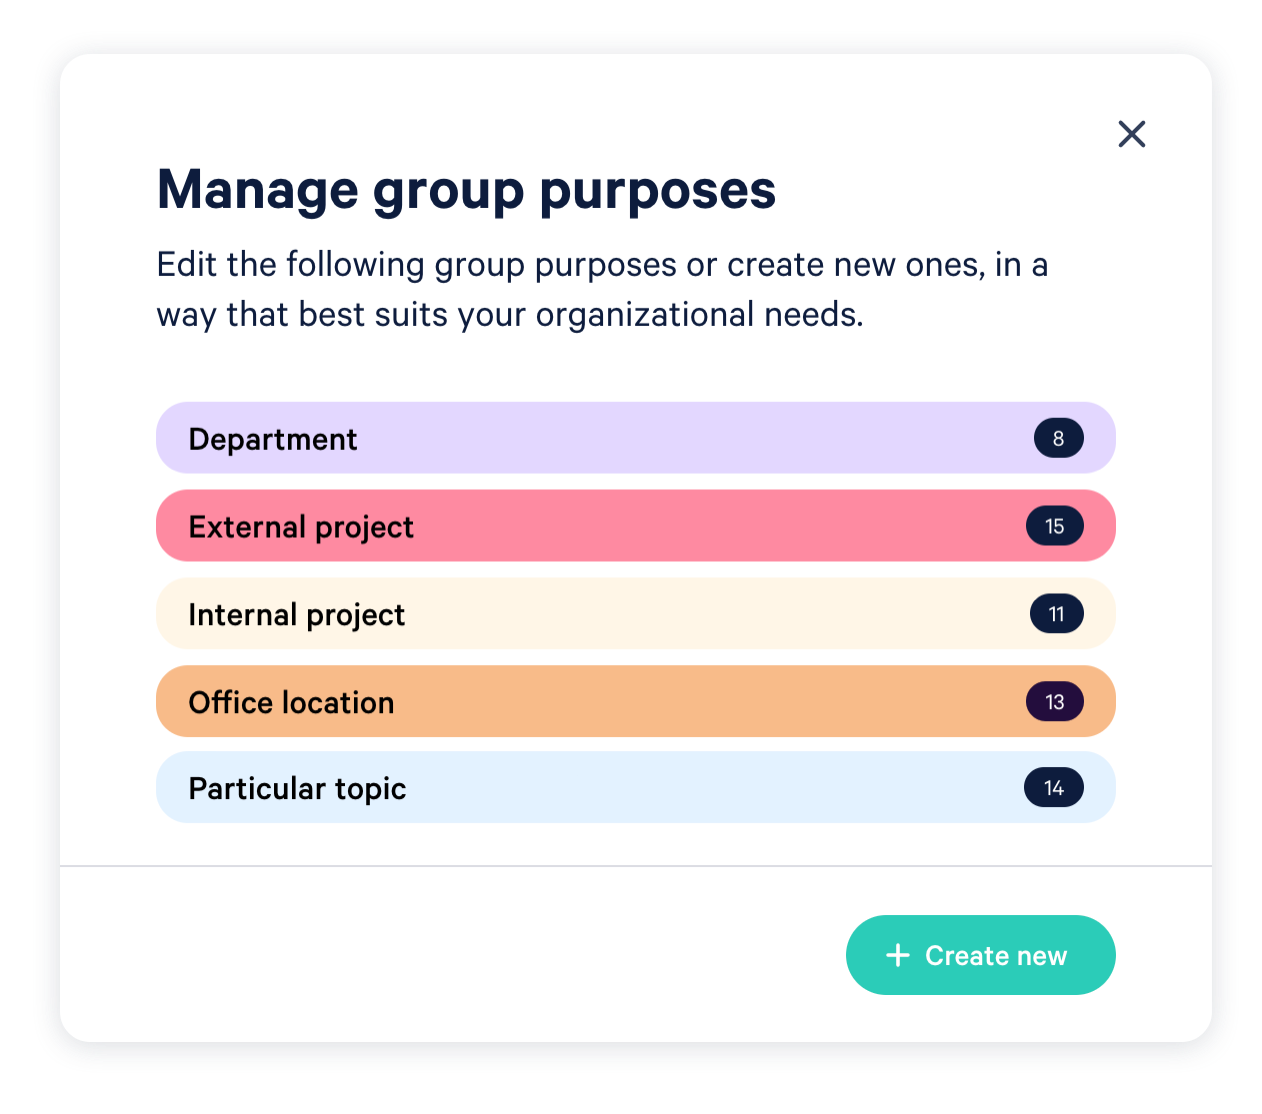 Manage how you want to categorize your teams and groups.